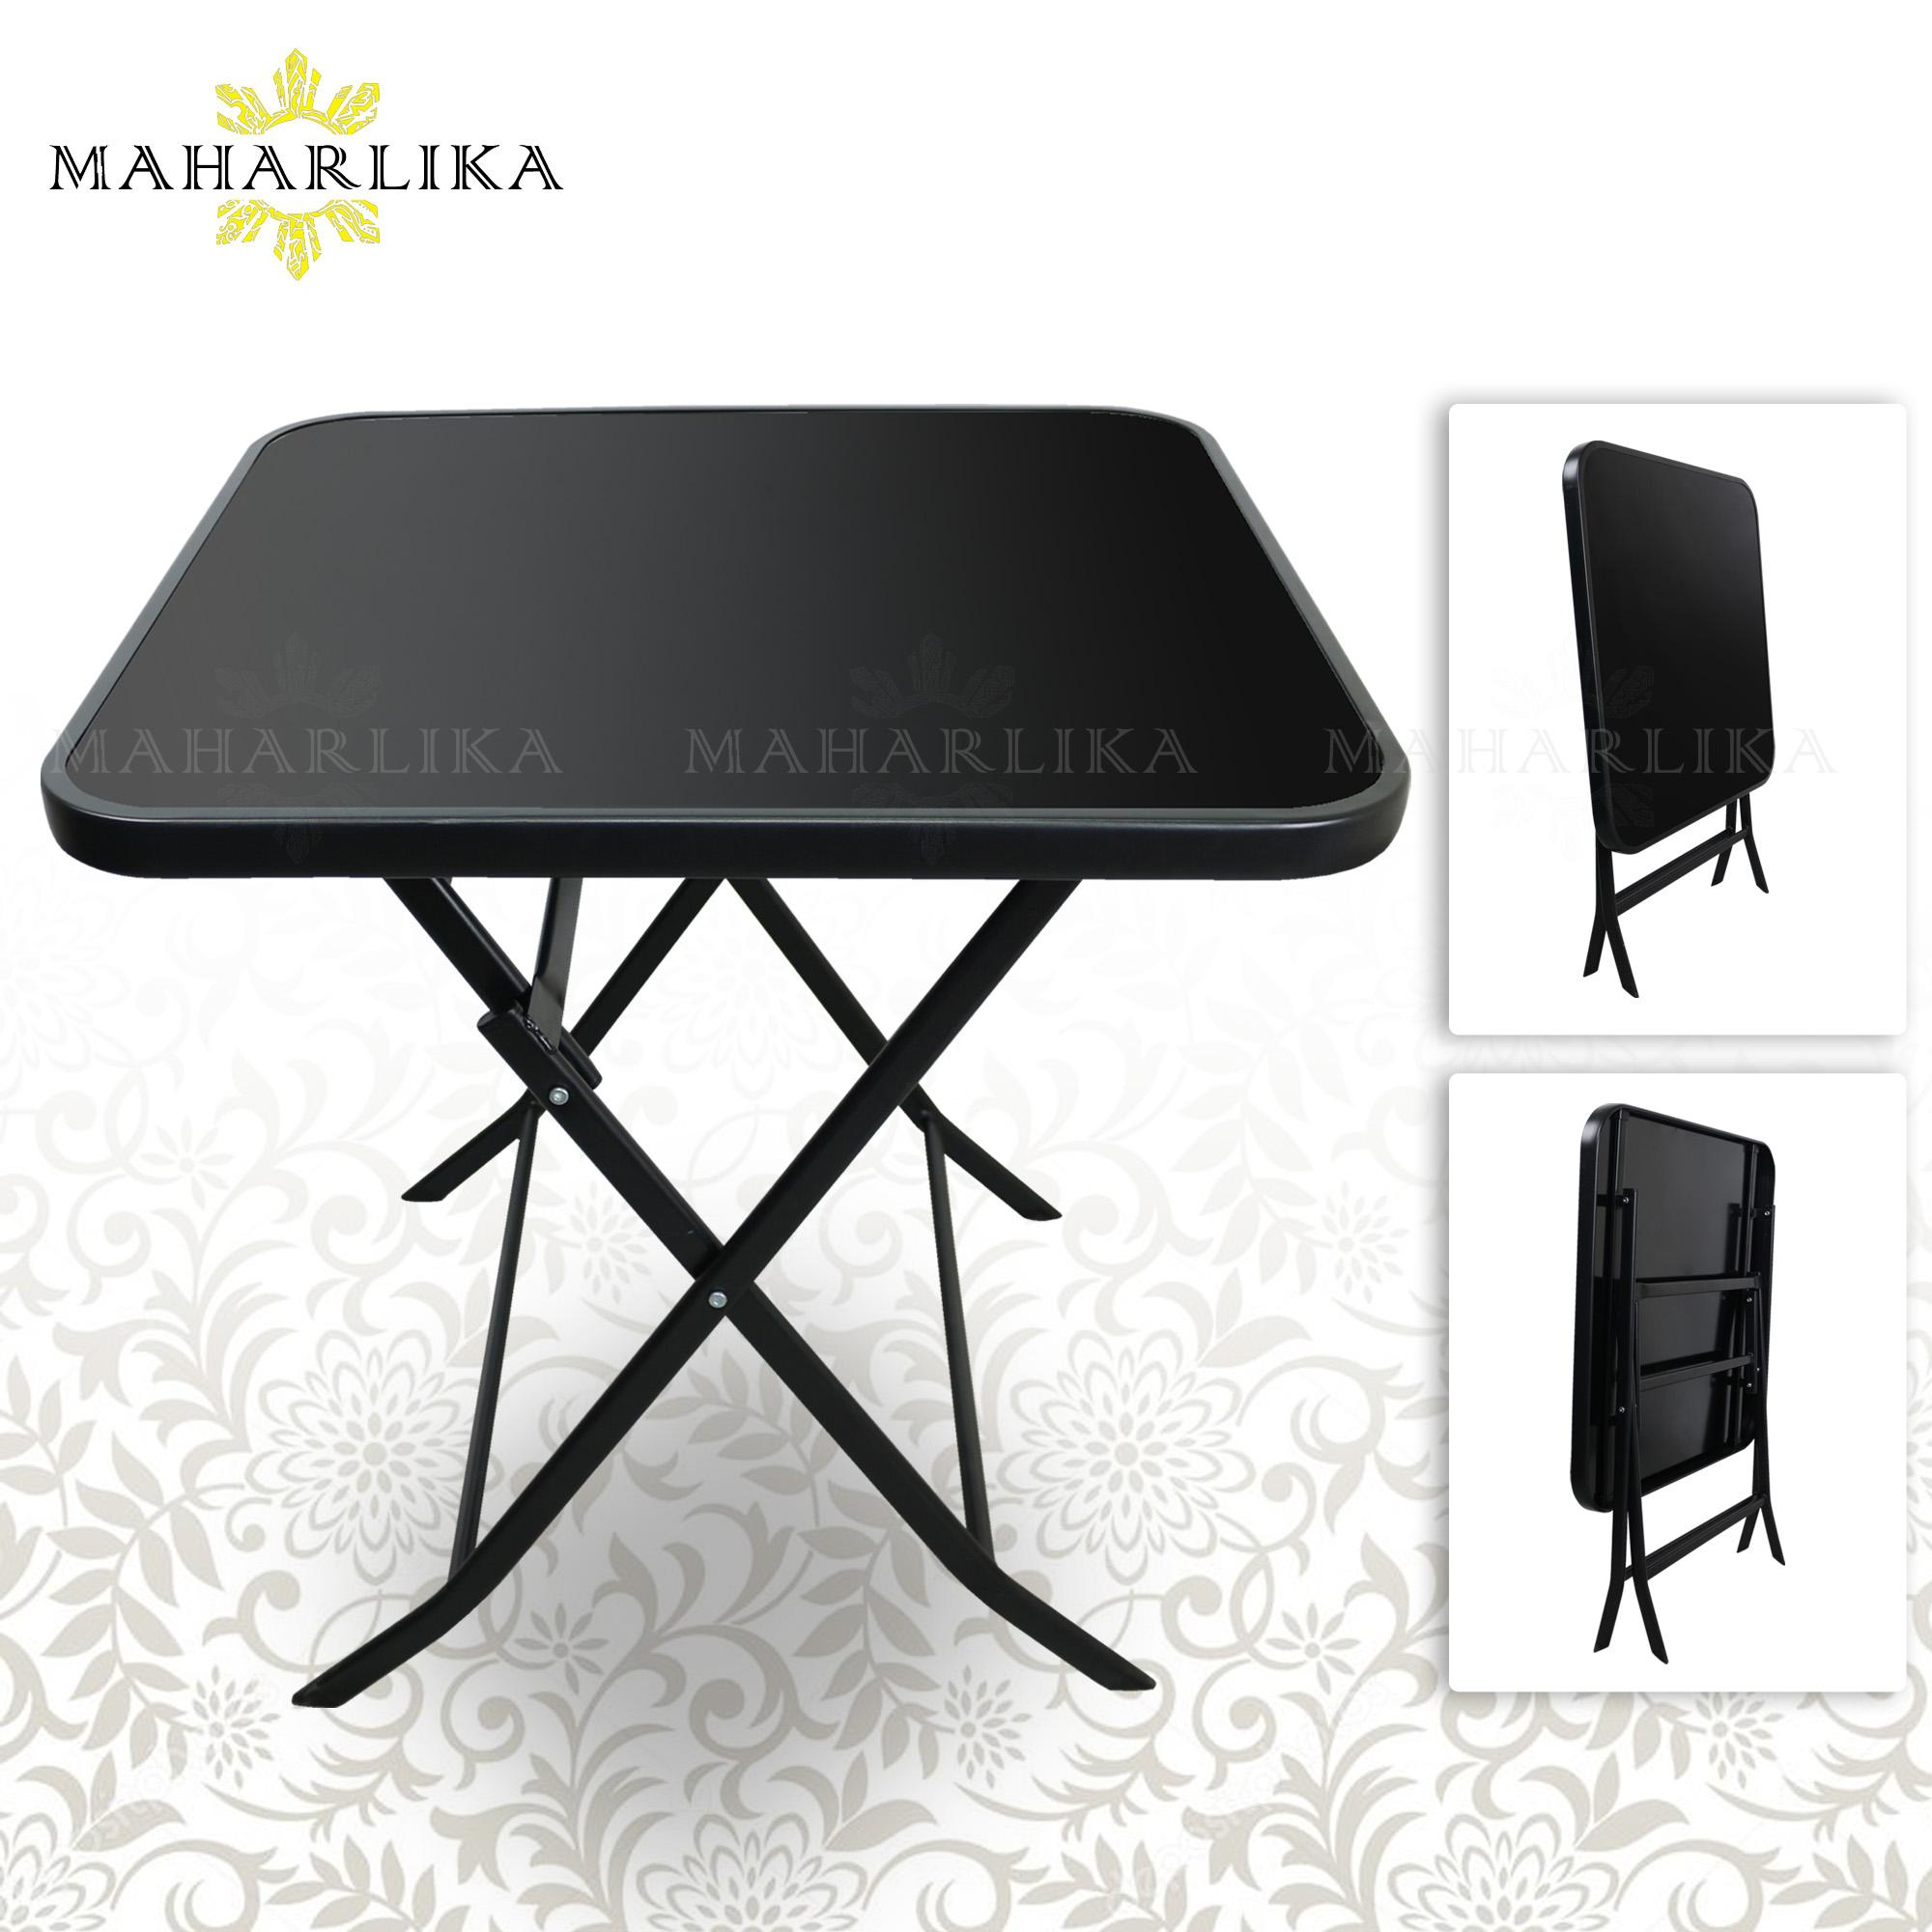 Maharlika 60x60x70cm Foldable Tempered Glass Dinning Table Black